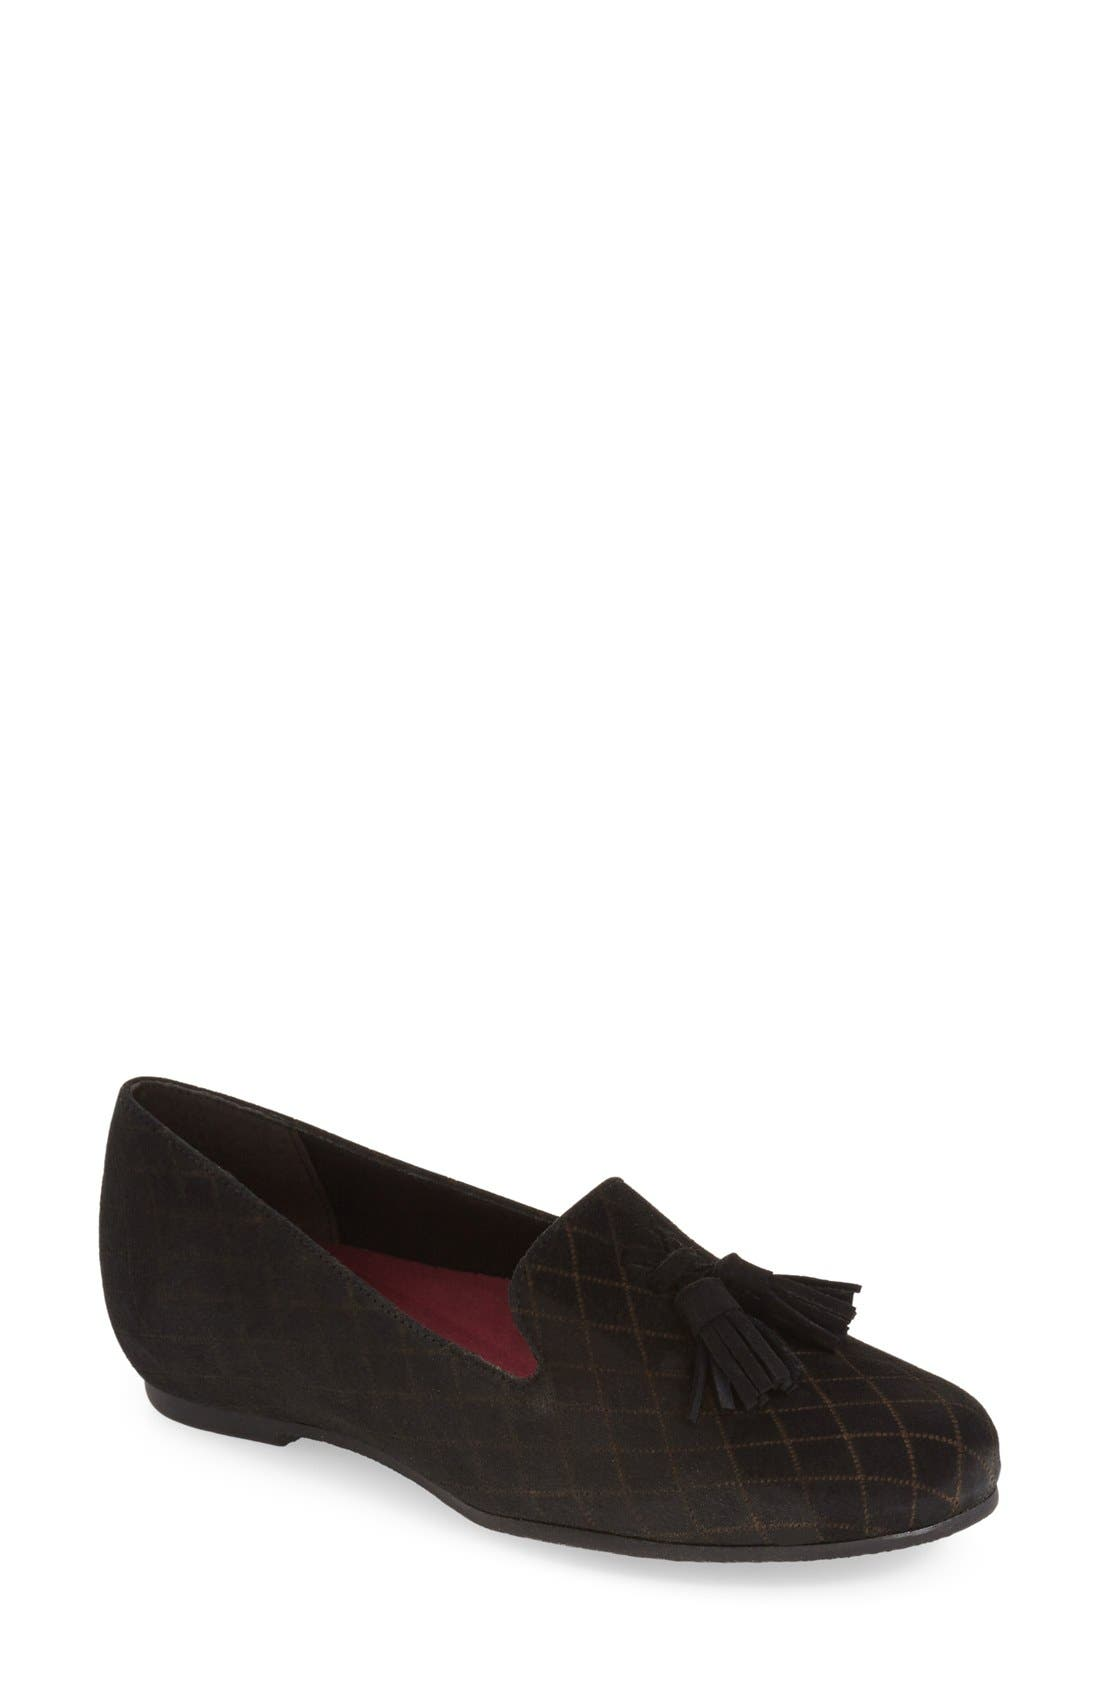 Munro 'Tallie' Tassel Loafer Flat (Women)